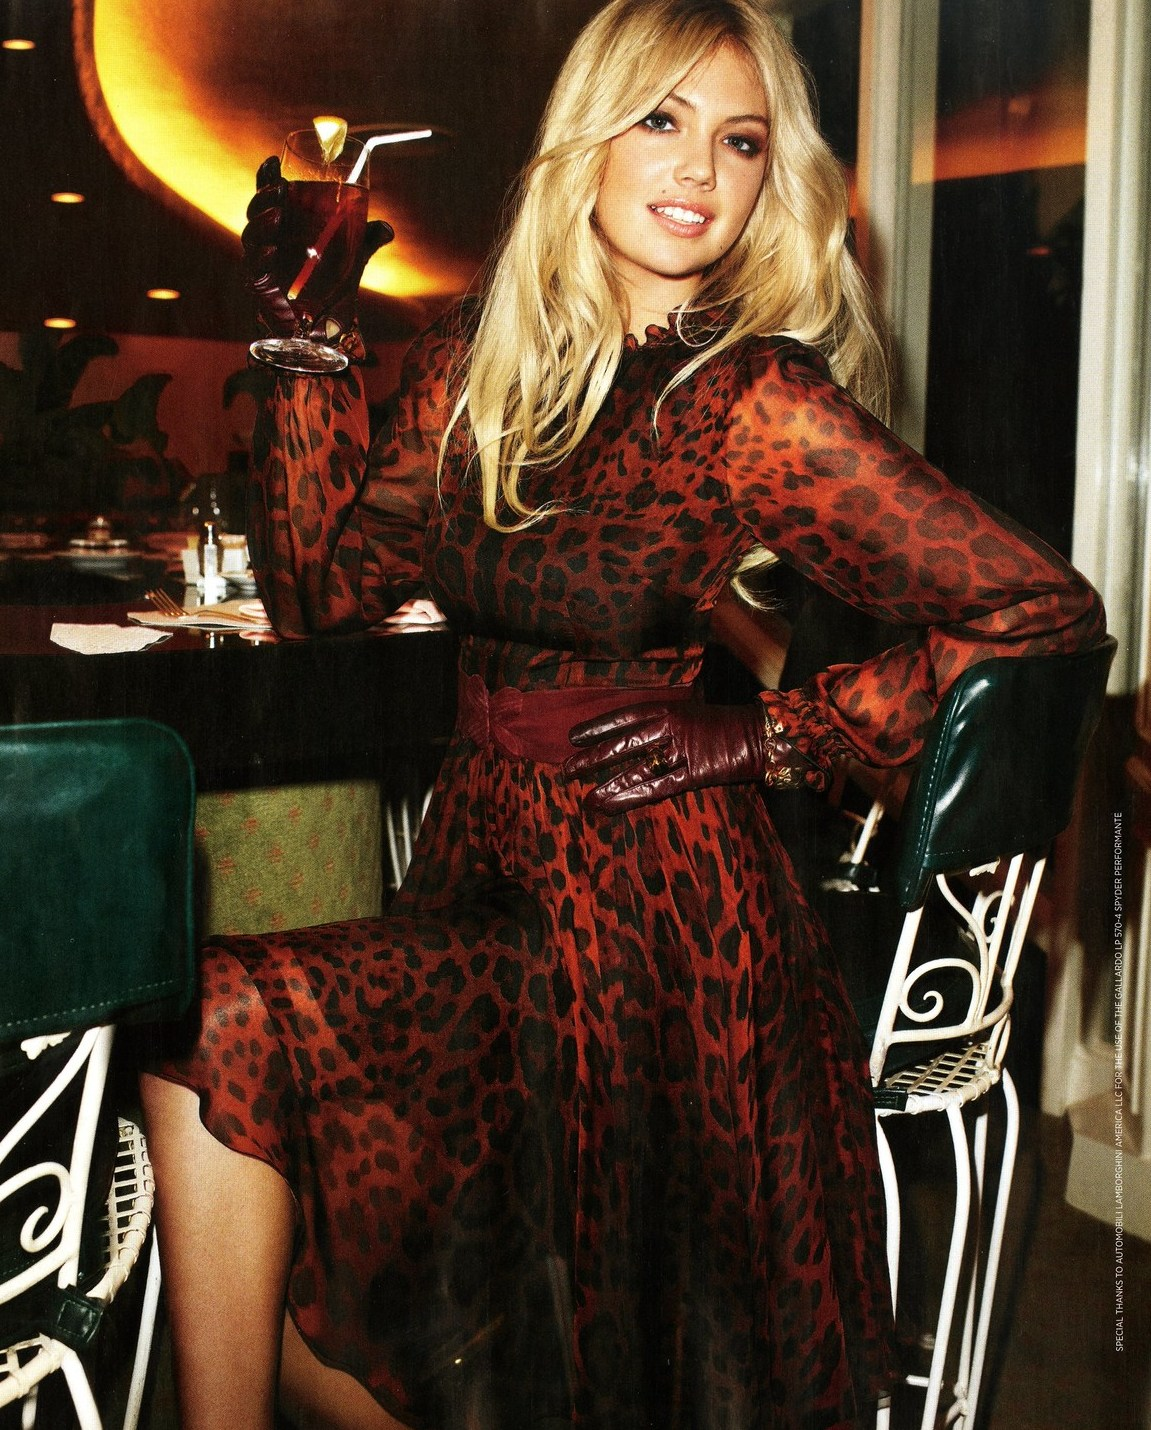 Kate-Upton-by-Terry-Richardson-The-Shape-Of-Things-Harpers-Bazaar-US-May-2012.jpg